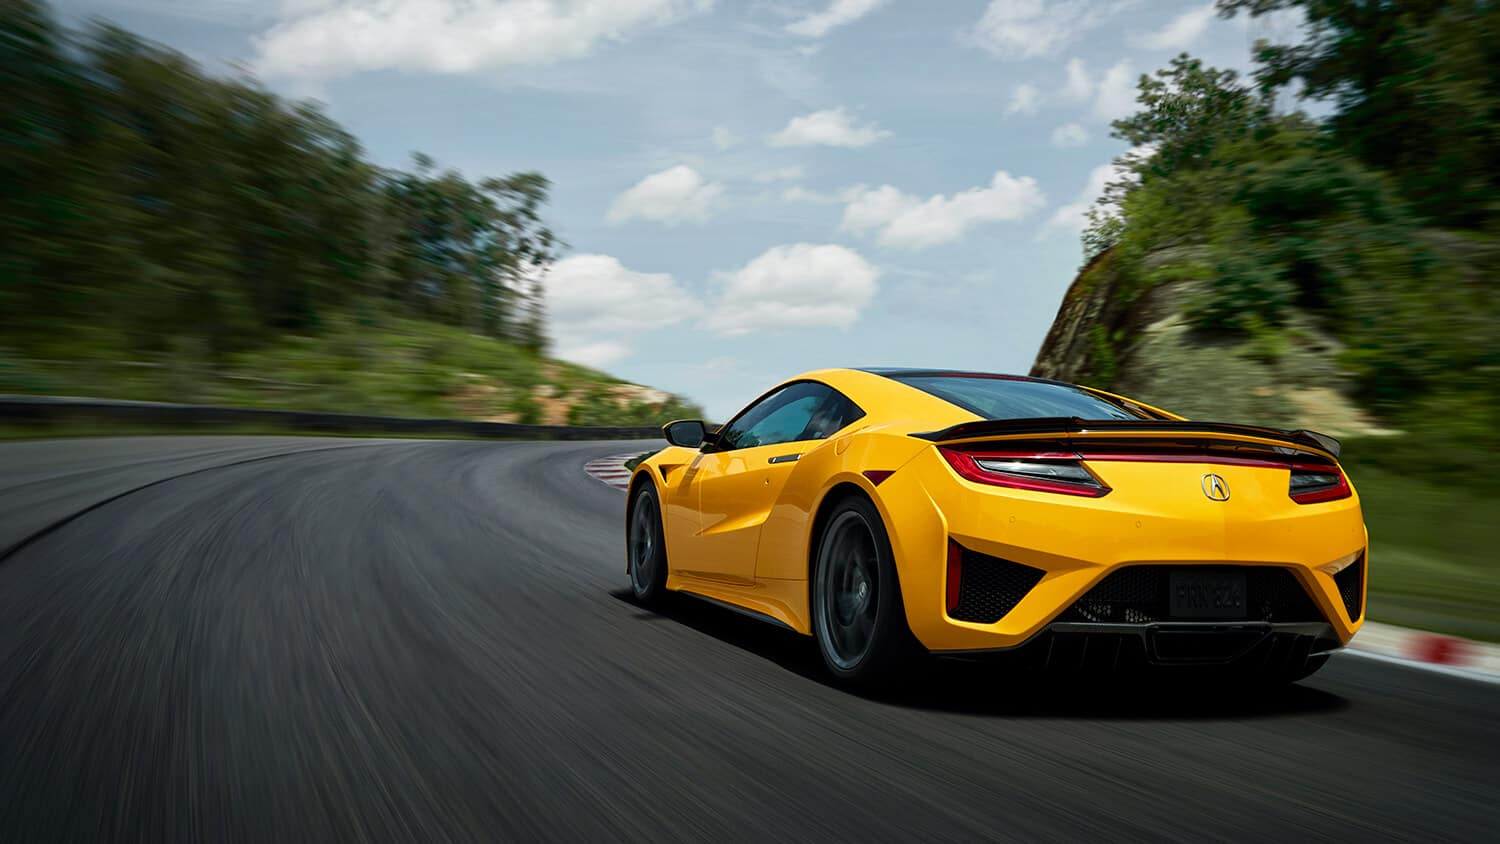 2020 Acura NSX Exterior Indy Yellow Pearl Rear Angle Driver Side